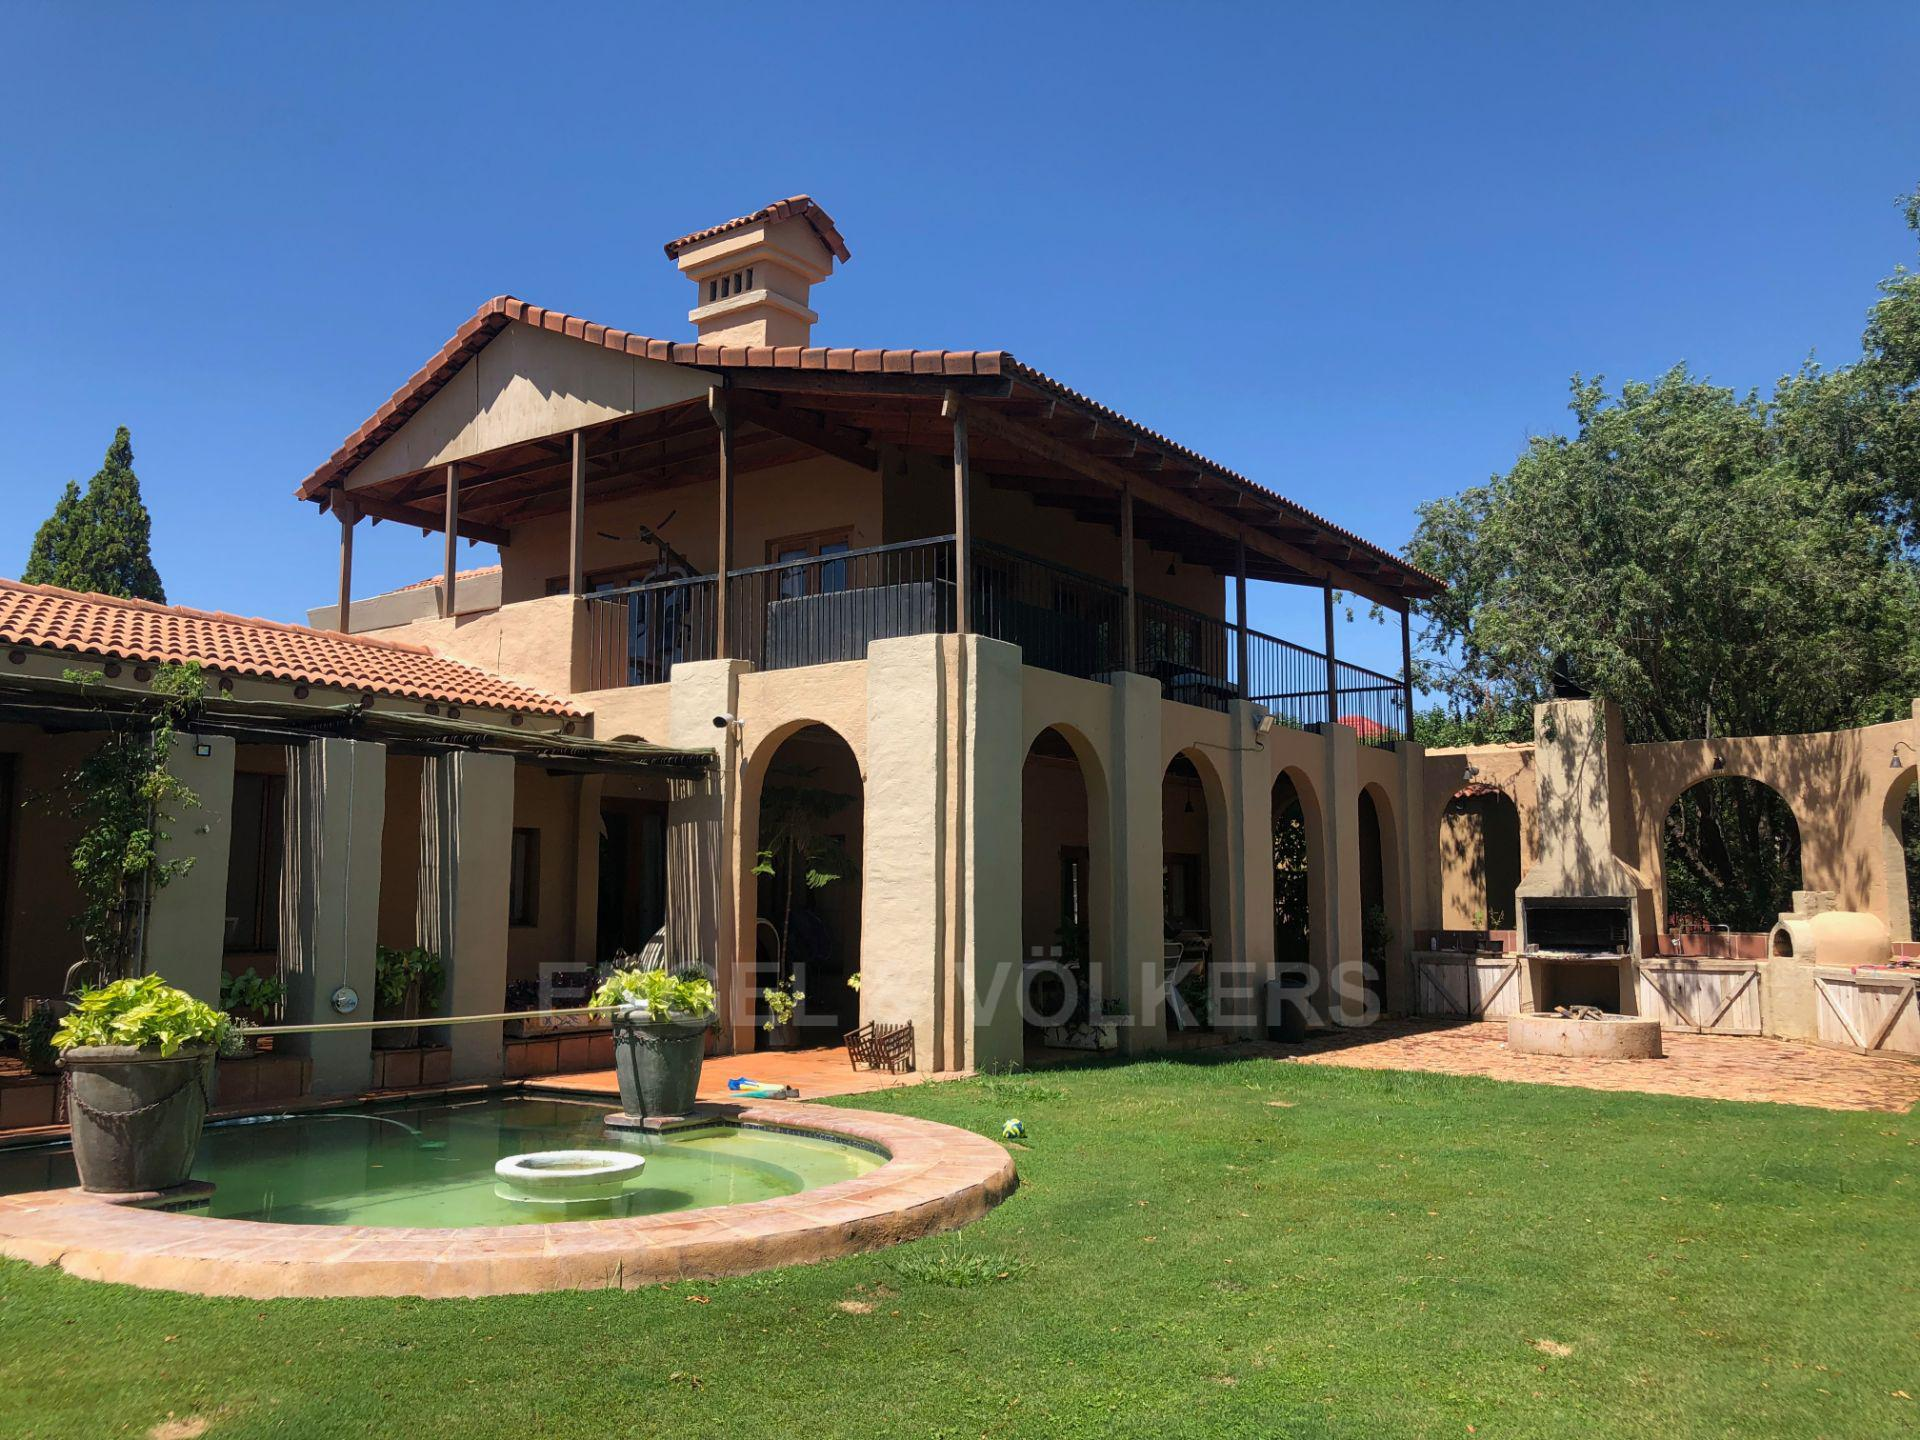 House in Magaliesview Estate - swimming pool